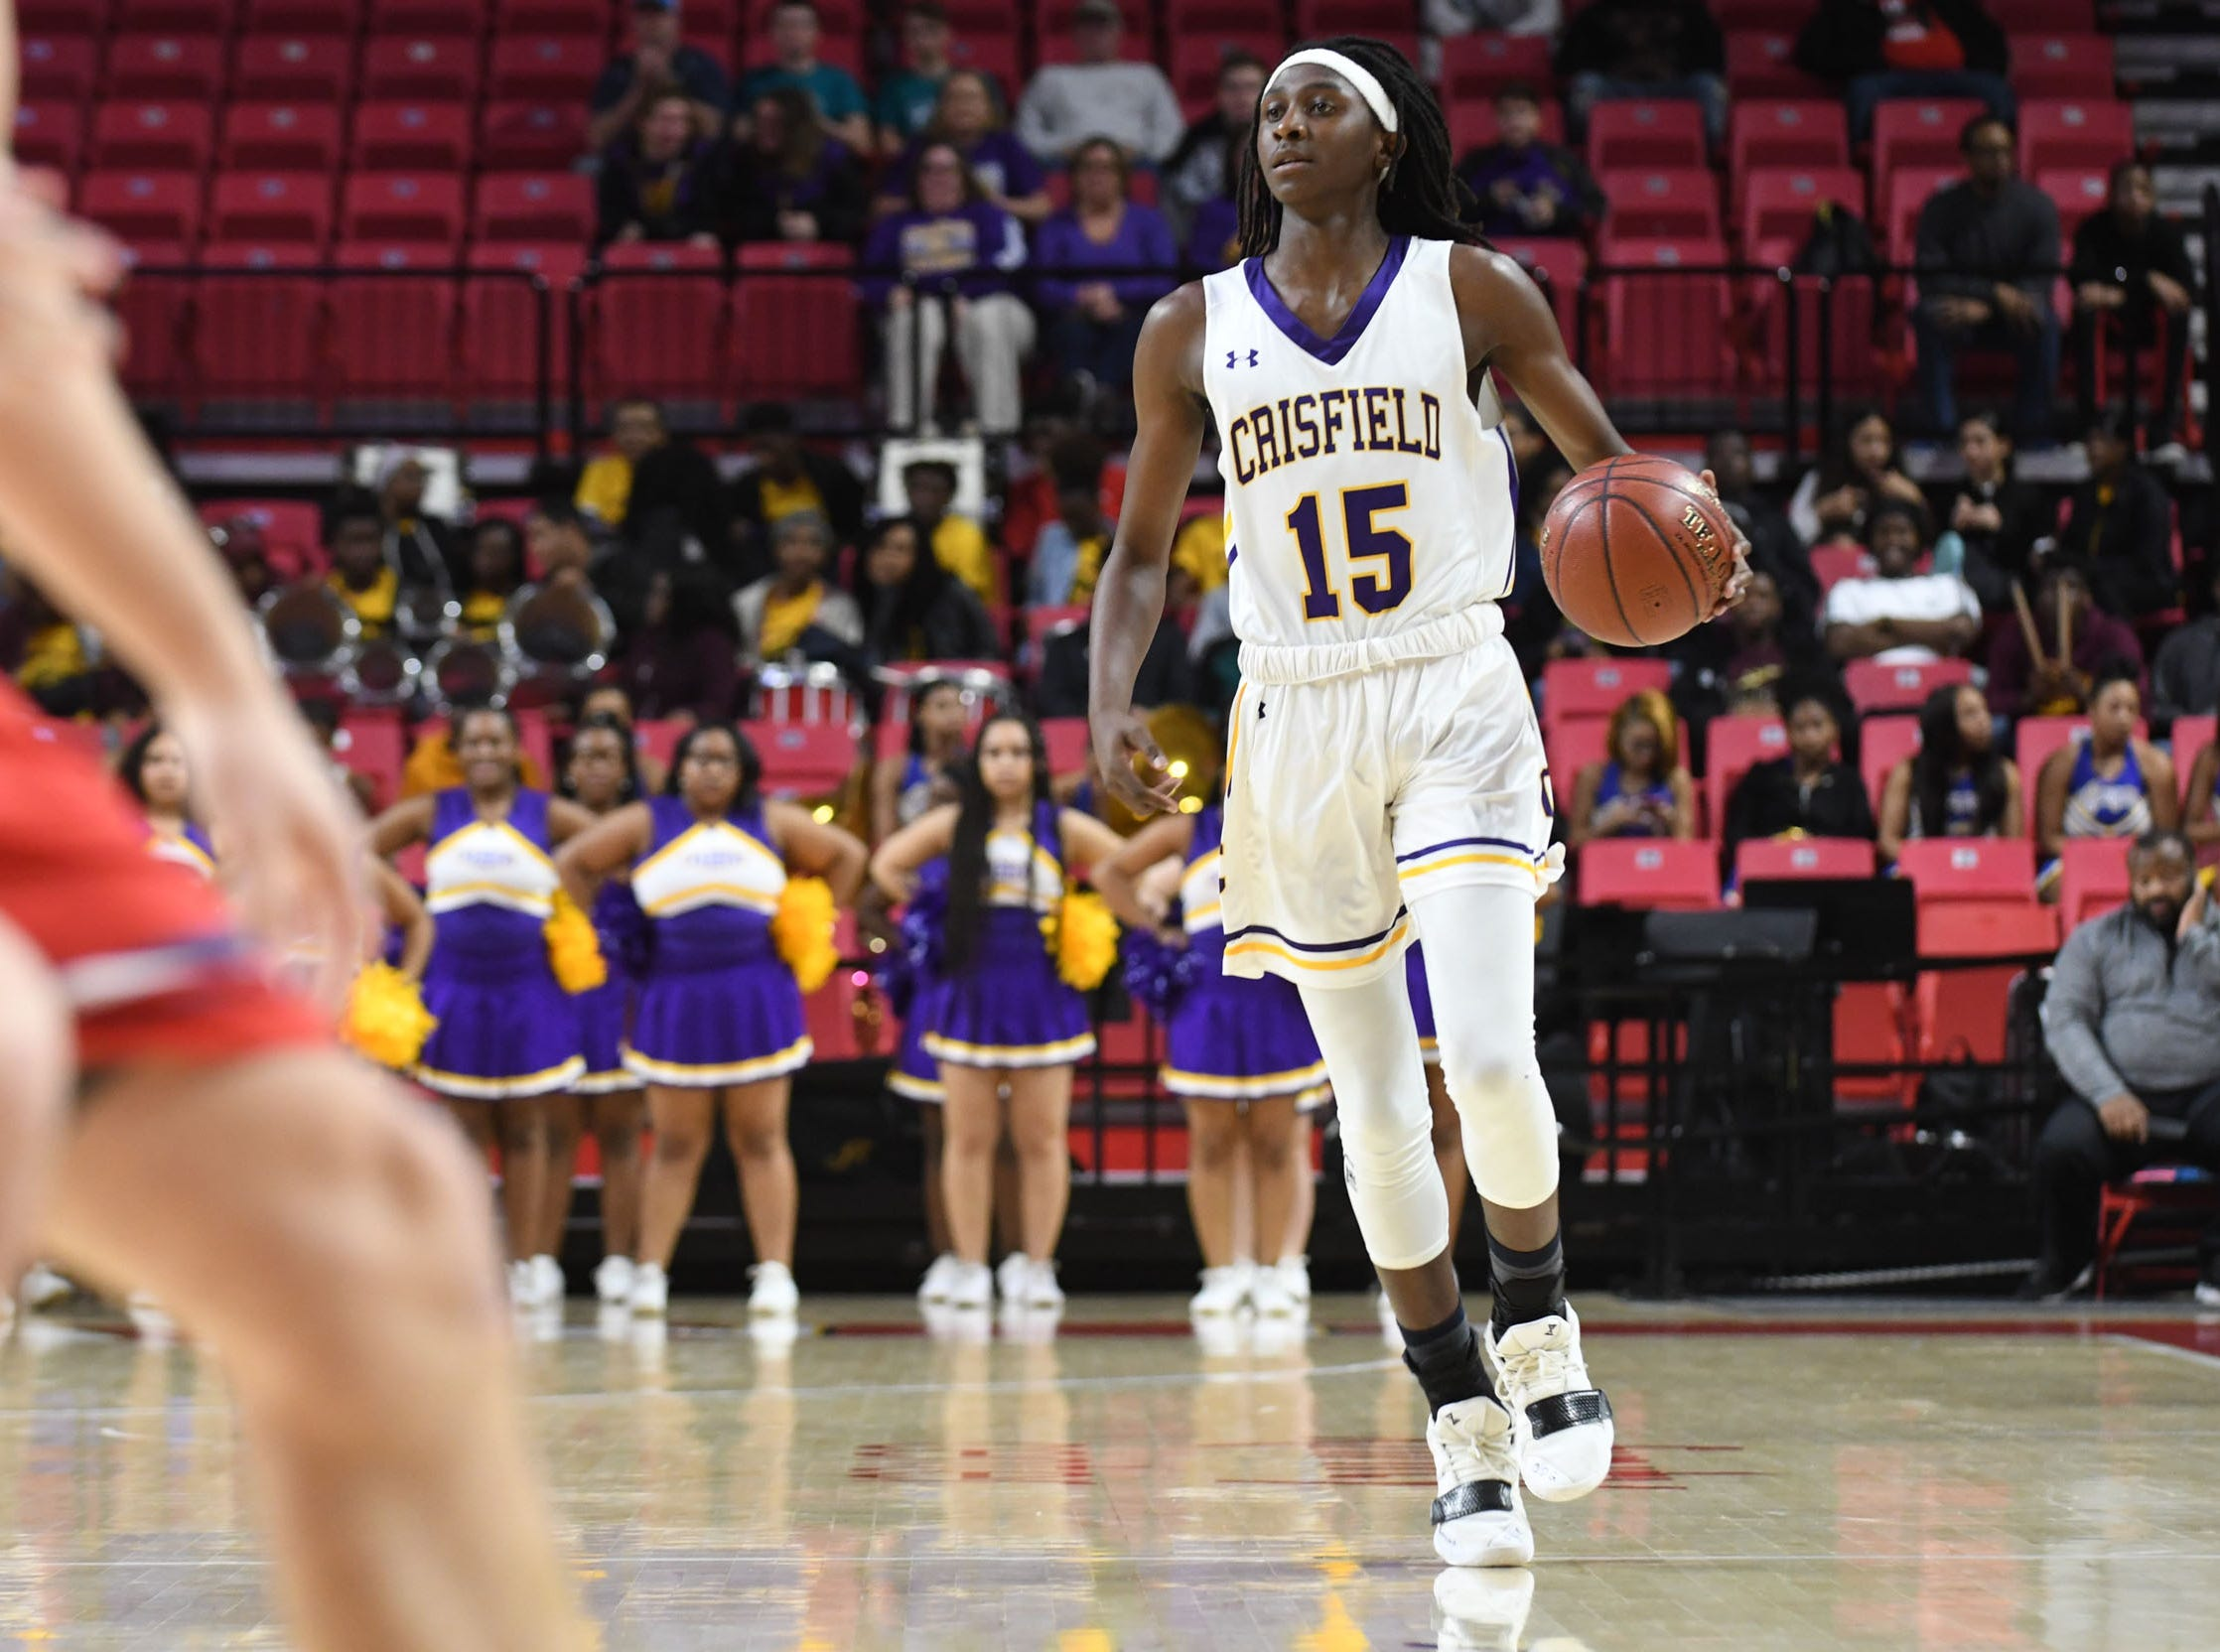 Crisfield's Cortrey Fontaine brings the ball down the court against Southern-Garrett during the MPSSAA State Championships at the Xfinity Center in College Park, Md. on Friday, March 15, 2019.